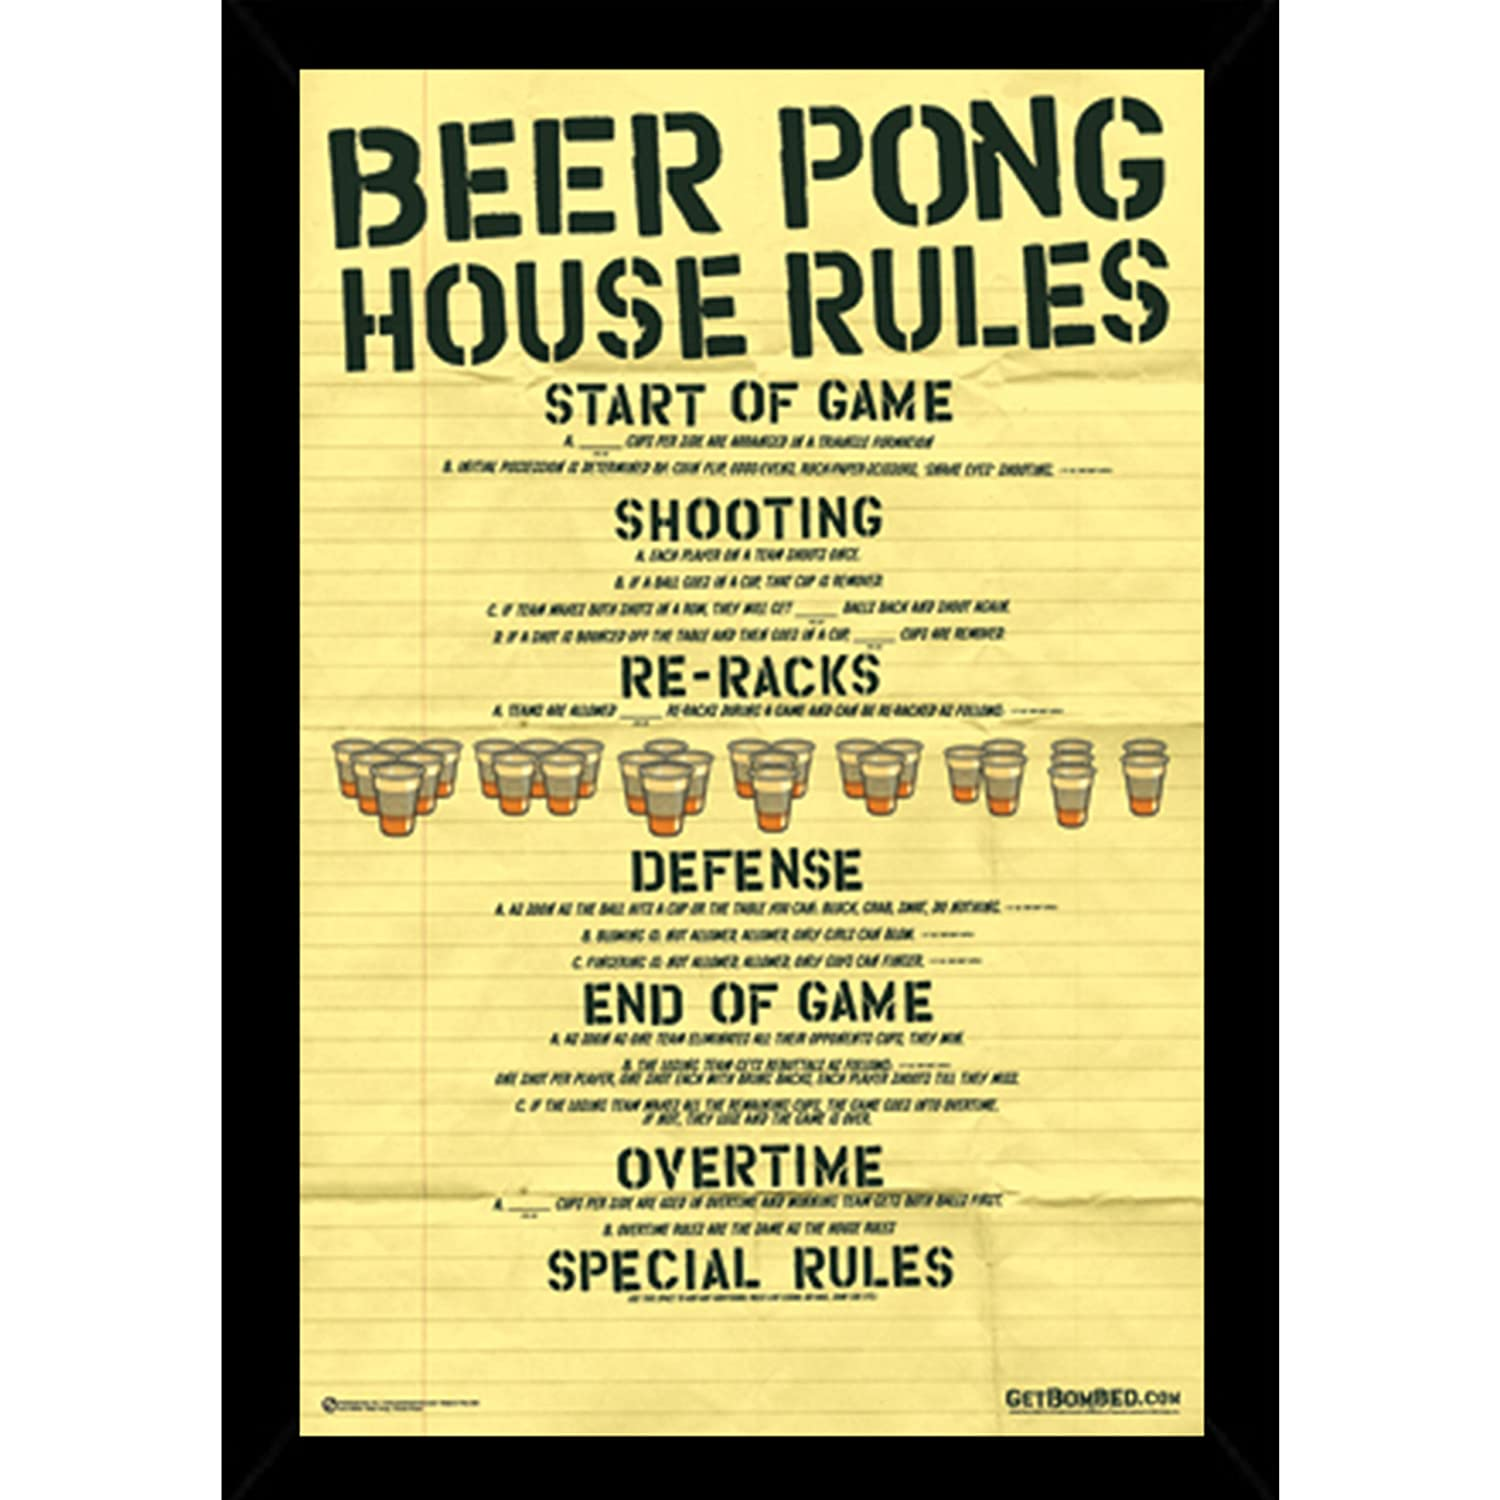 Amazon.com: Beer Pong - House Rules Poster in a Black Poster Frame ...